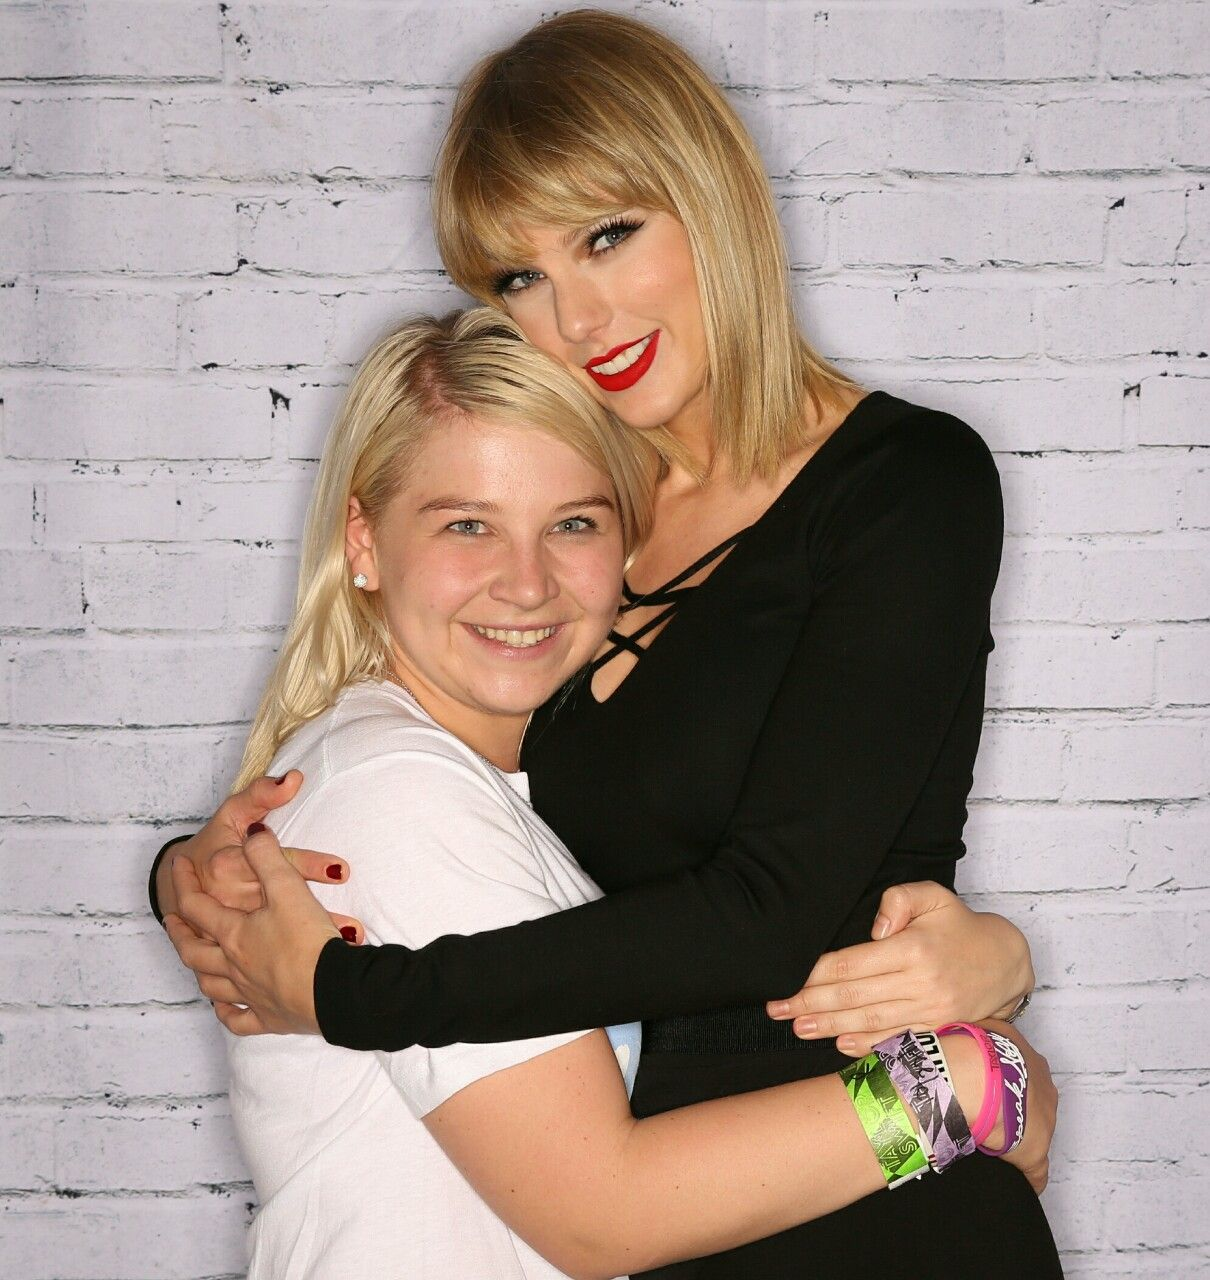 Taylor With A Fan At The Formula 1 Meet And Greet 102216 T